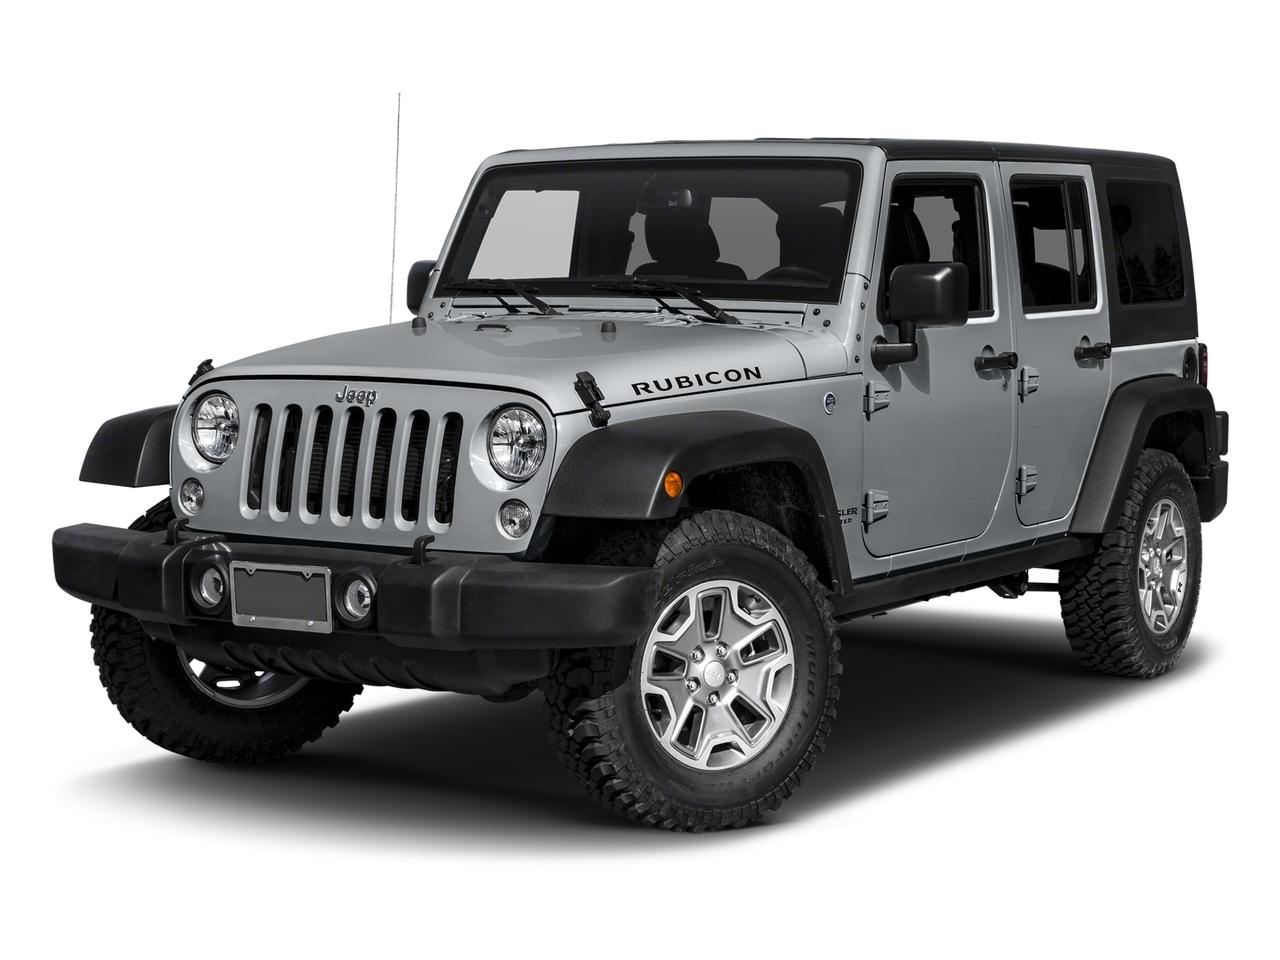 2016 Jeep Wrangler Unlimited Vehicle Photo in Colma, CA 94014